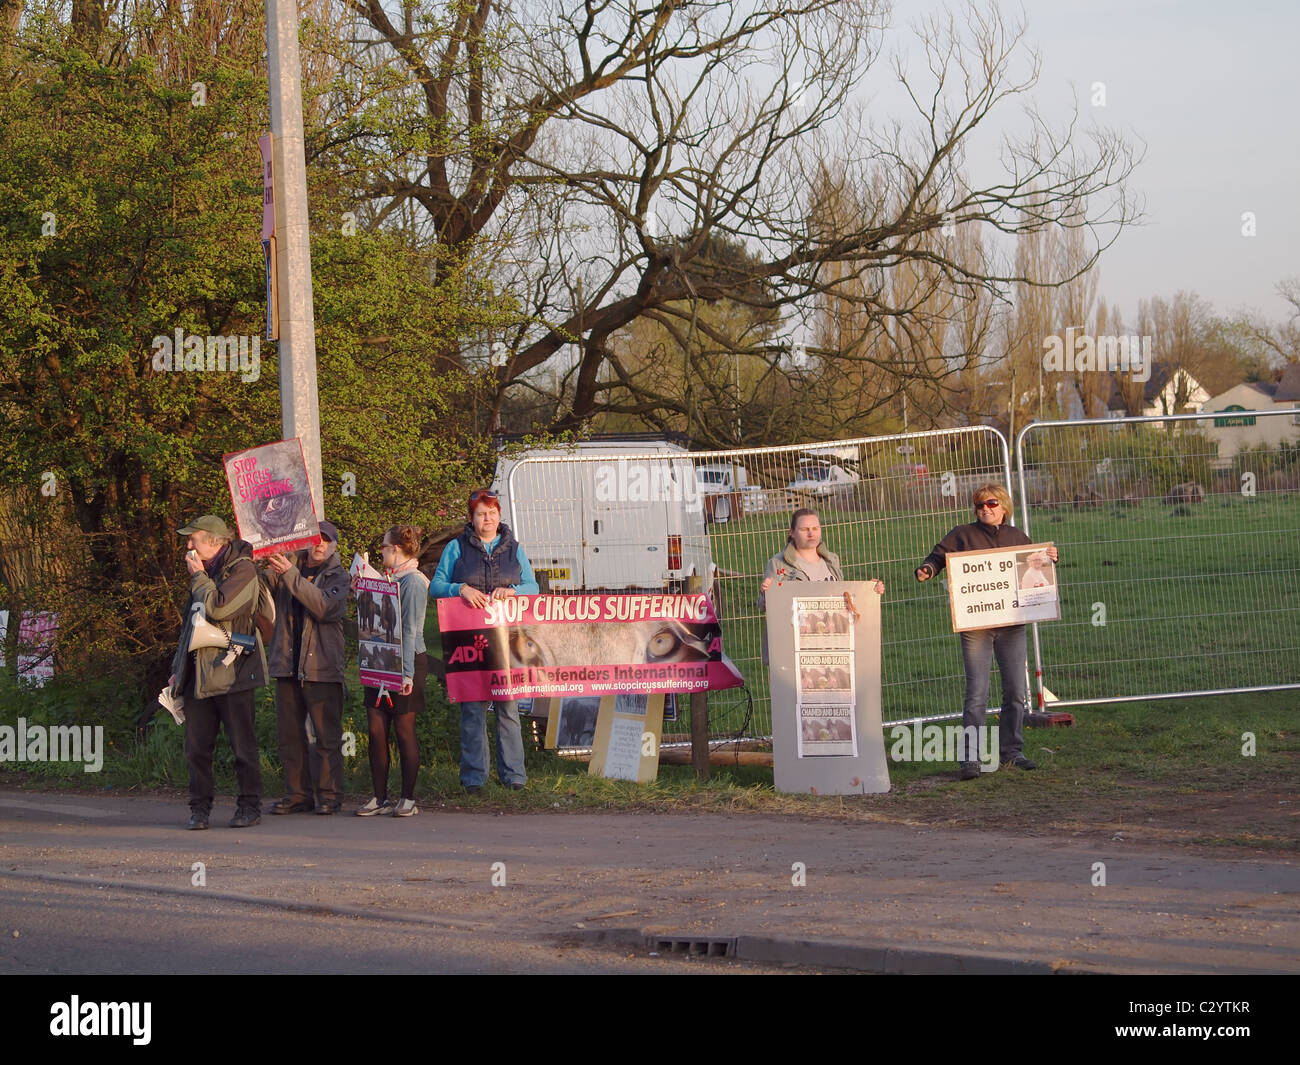 Demonstrators against the use of animals in circus acts at the entrance to Bobby Roberts travelling circus. Stock Photo